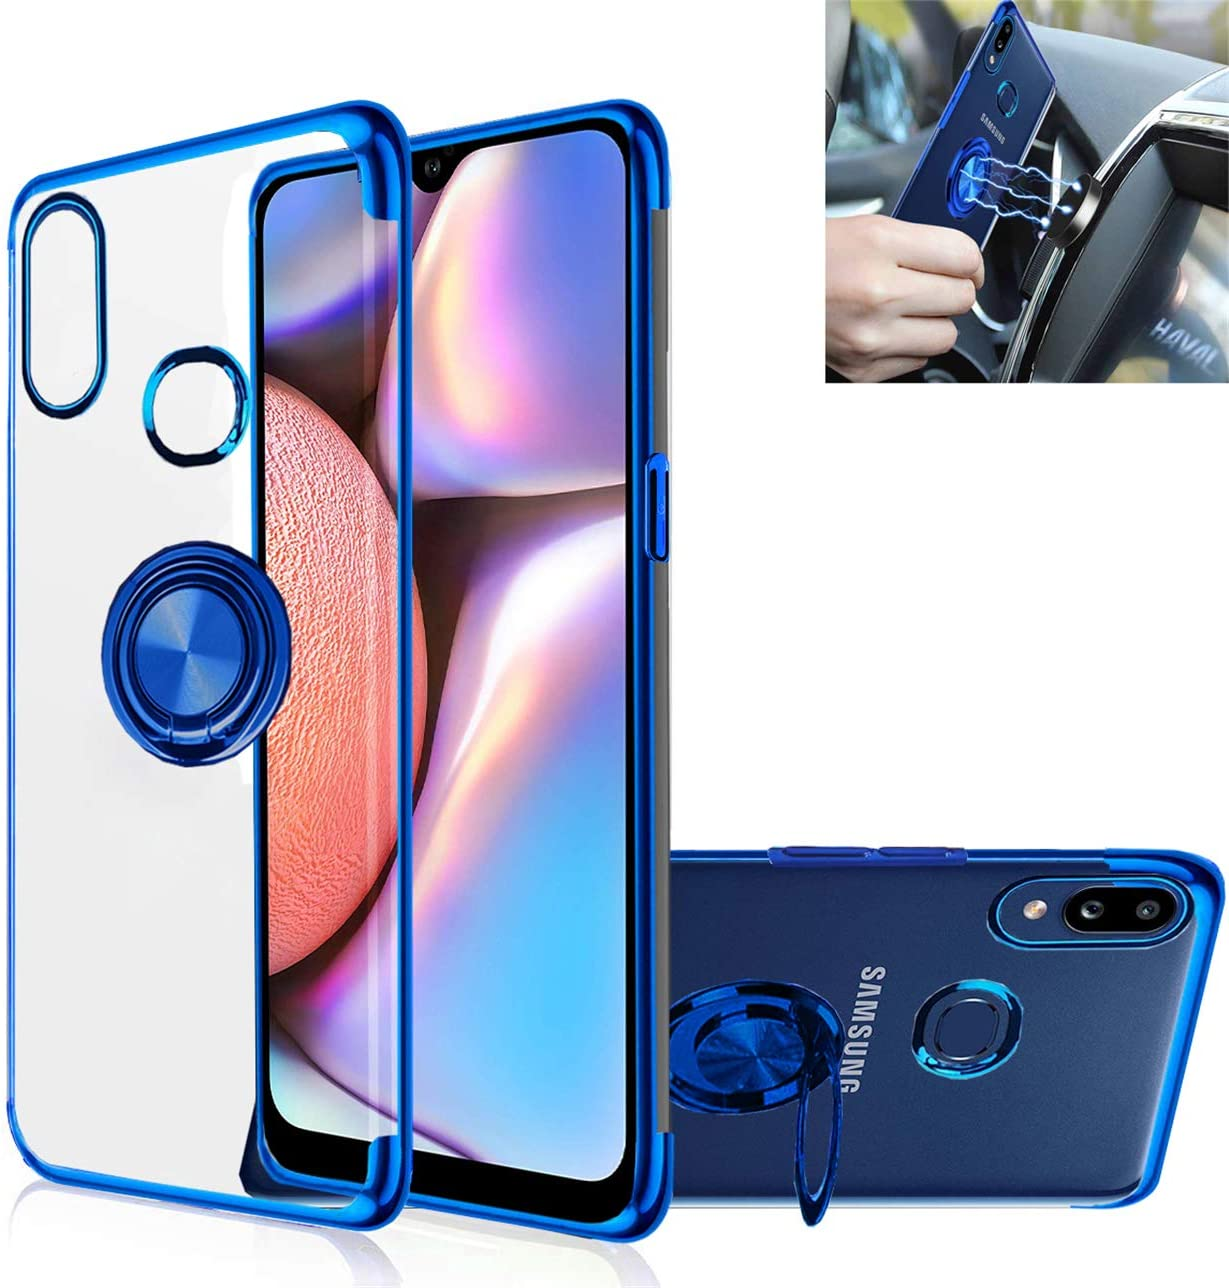 GarHold Galaxy A10s case,Clear Silicone TPU,360° Ring Kickstand,Electroplated Metal Technology case,Shockproof Protection Thin Transparent Cover for Samsung Galaxy A10s (Blue)